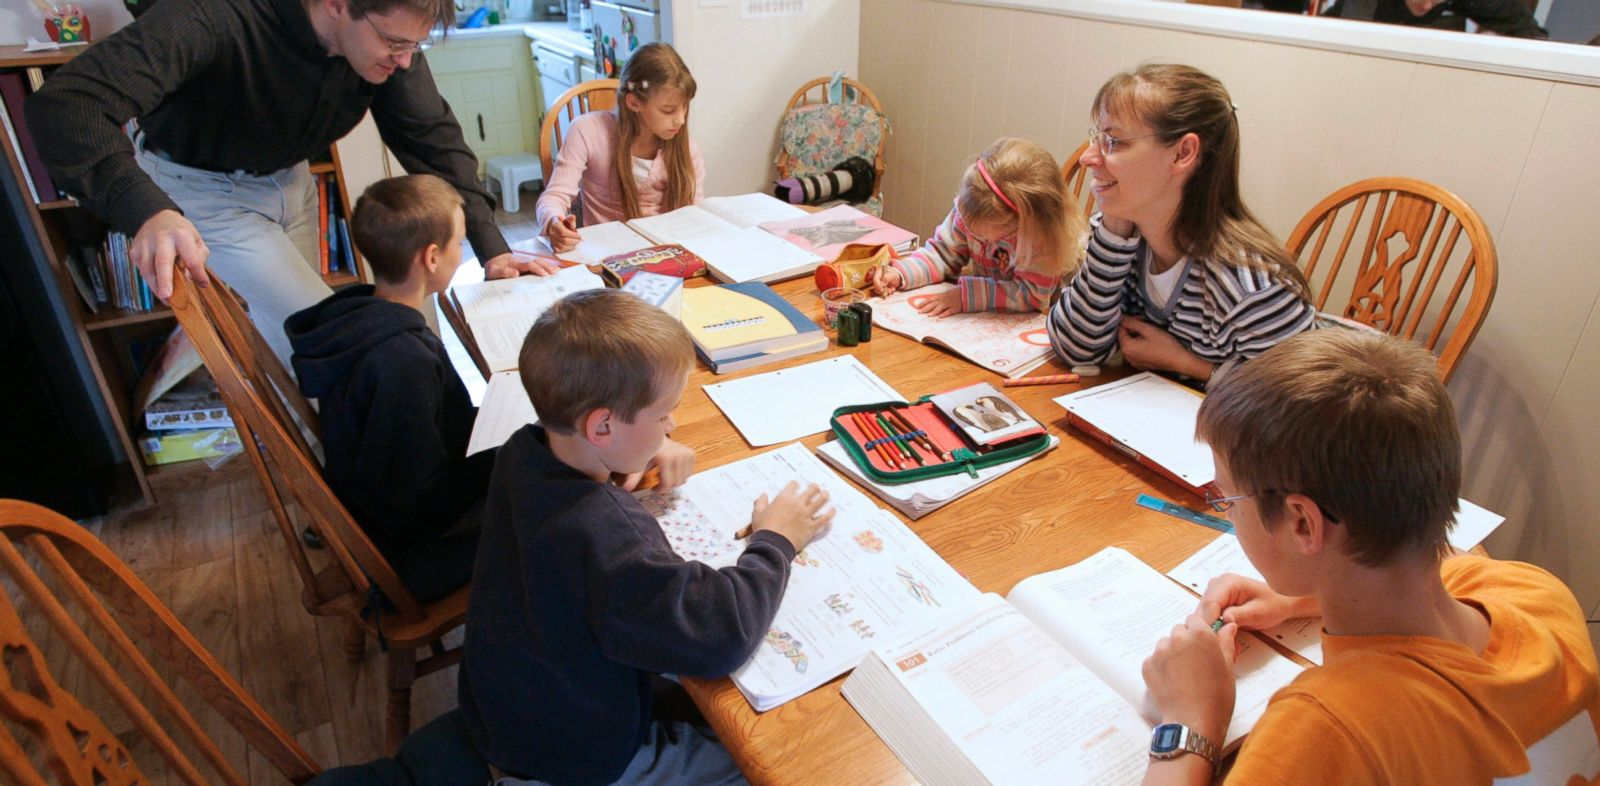 PHOTO: This March 13, 2009 file photo shows Uwe Romeike, top left, and his wife Hannelore, second from right, teaching their children at their home in Morristown, Tenn.